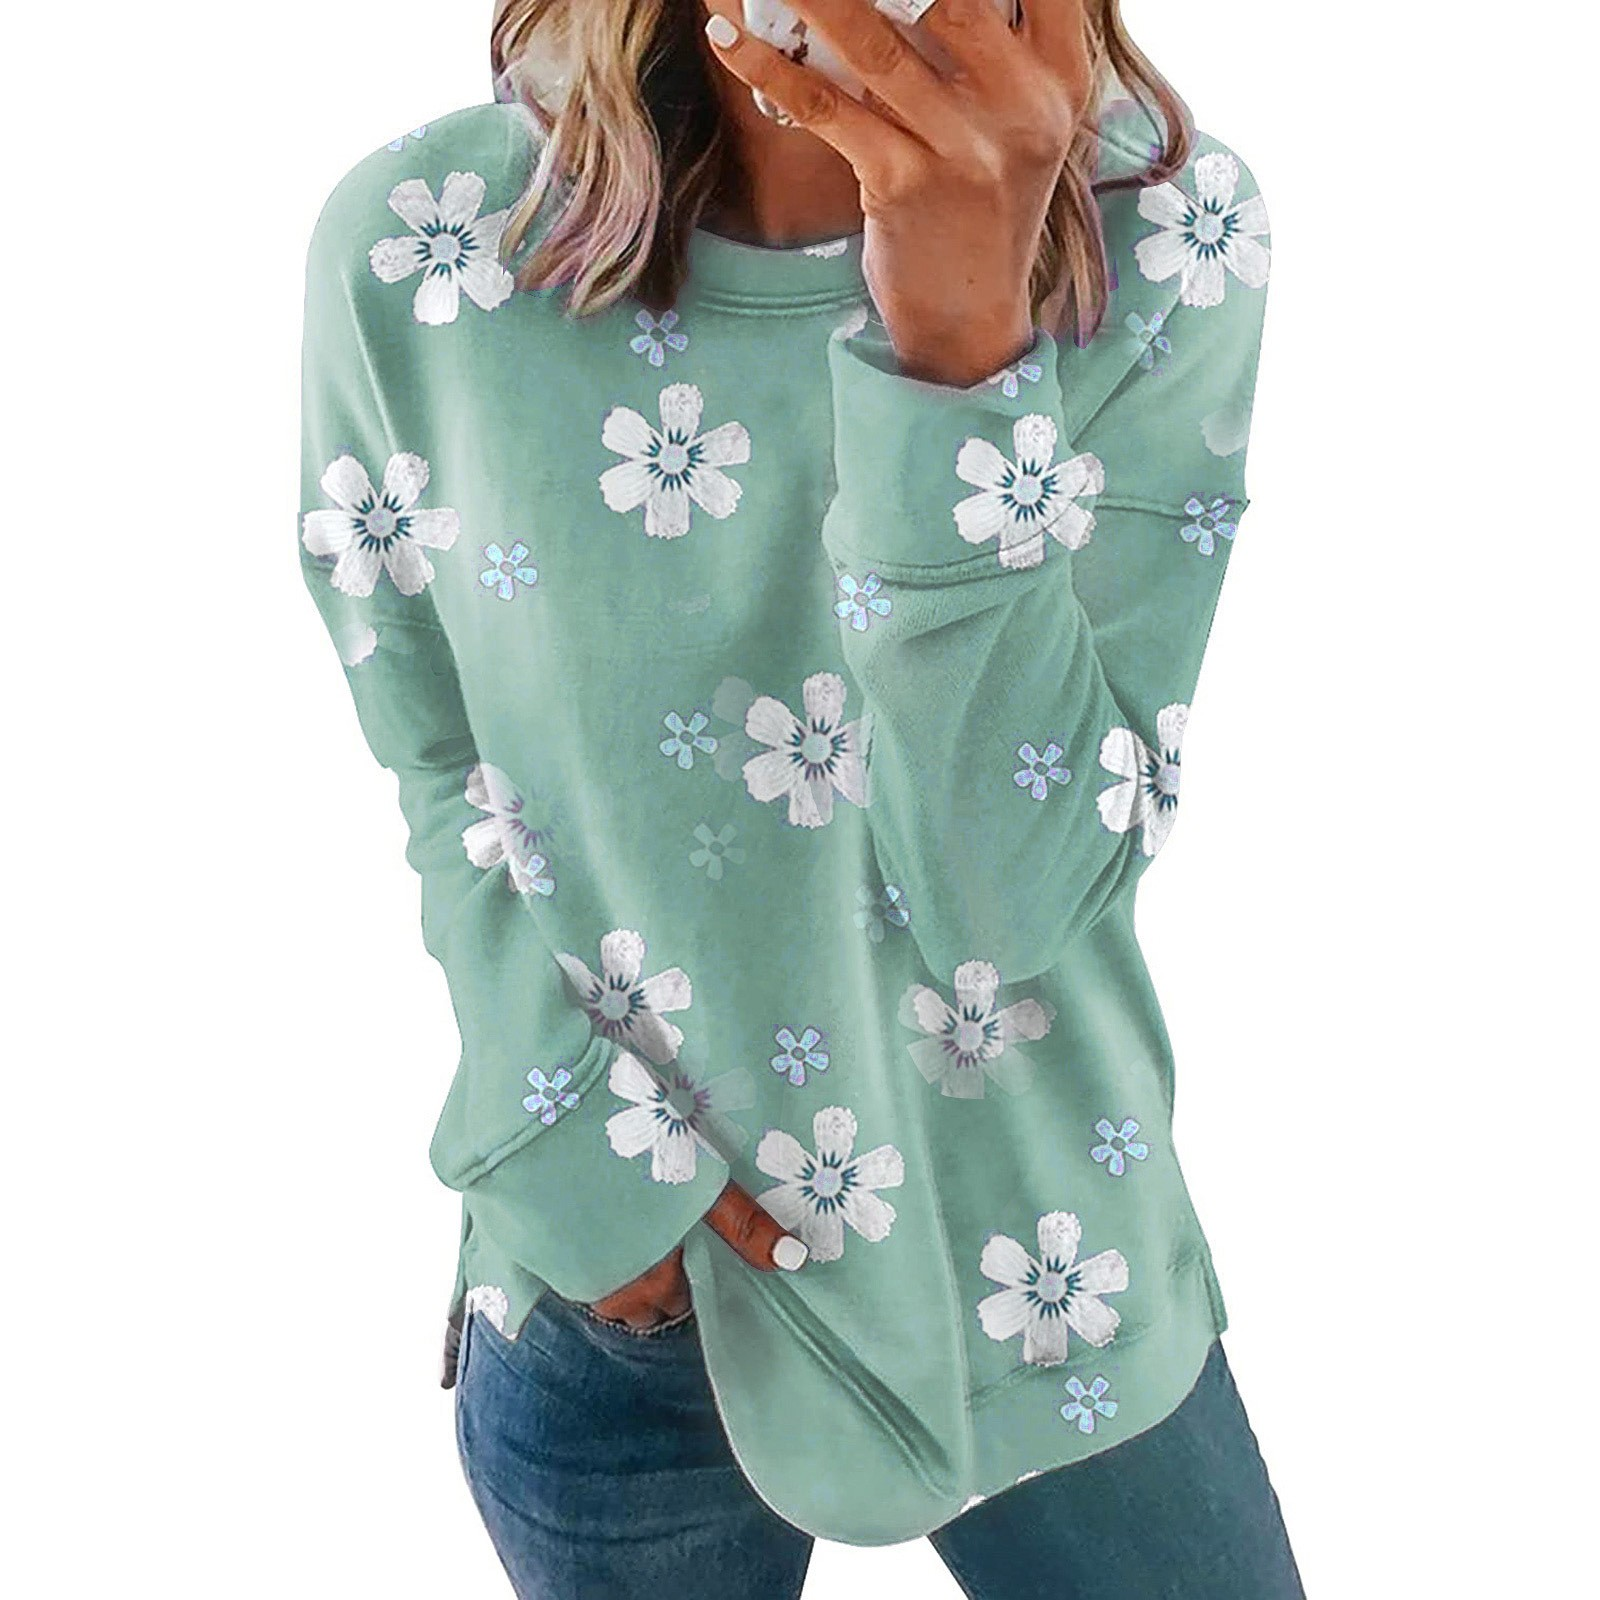 Sweet Floral Tops Shirts For Women 2021 Spring Autumn Casual Loose O-Neck Long Sleeve Shirts camisetas de mujer